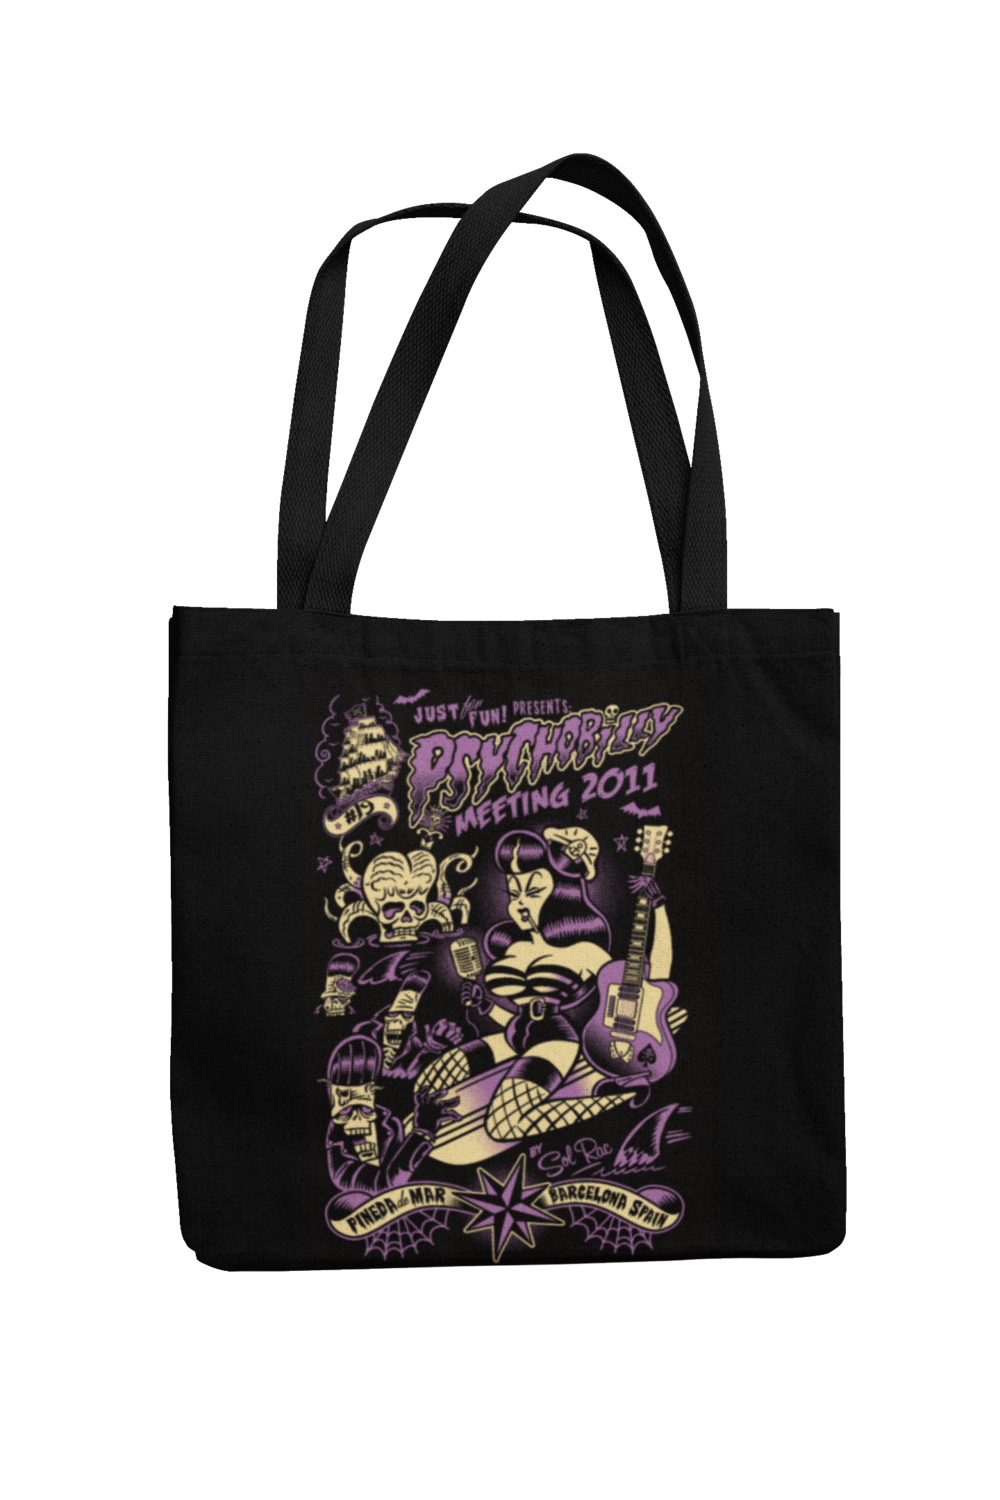 Cotton Bag Psychobilly meeting design by Solrac 2011